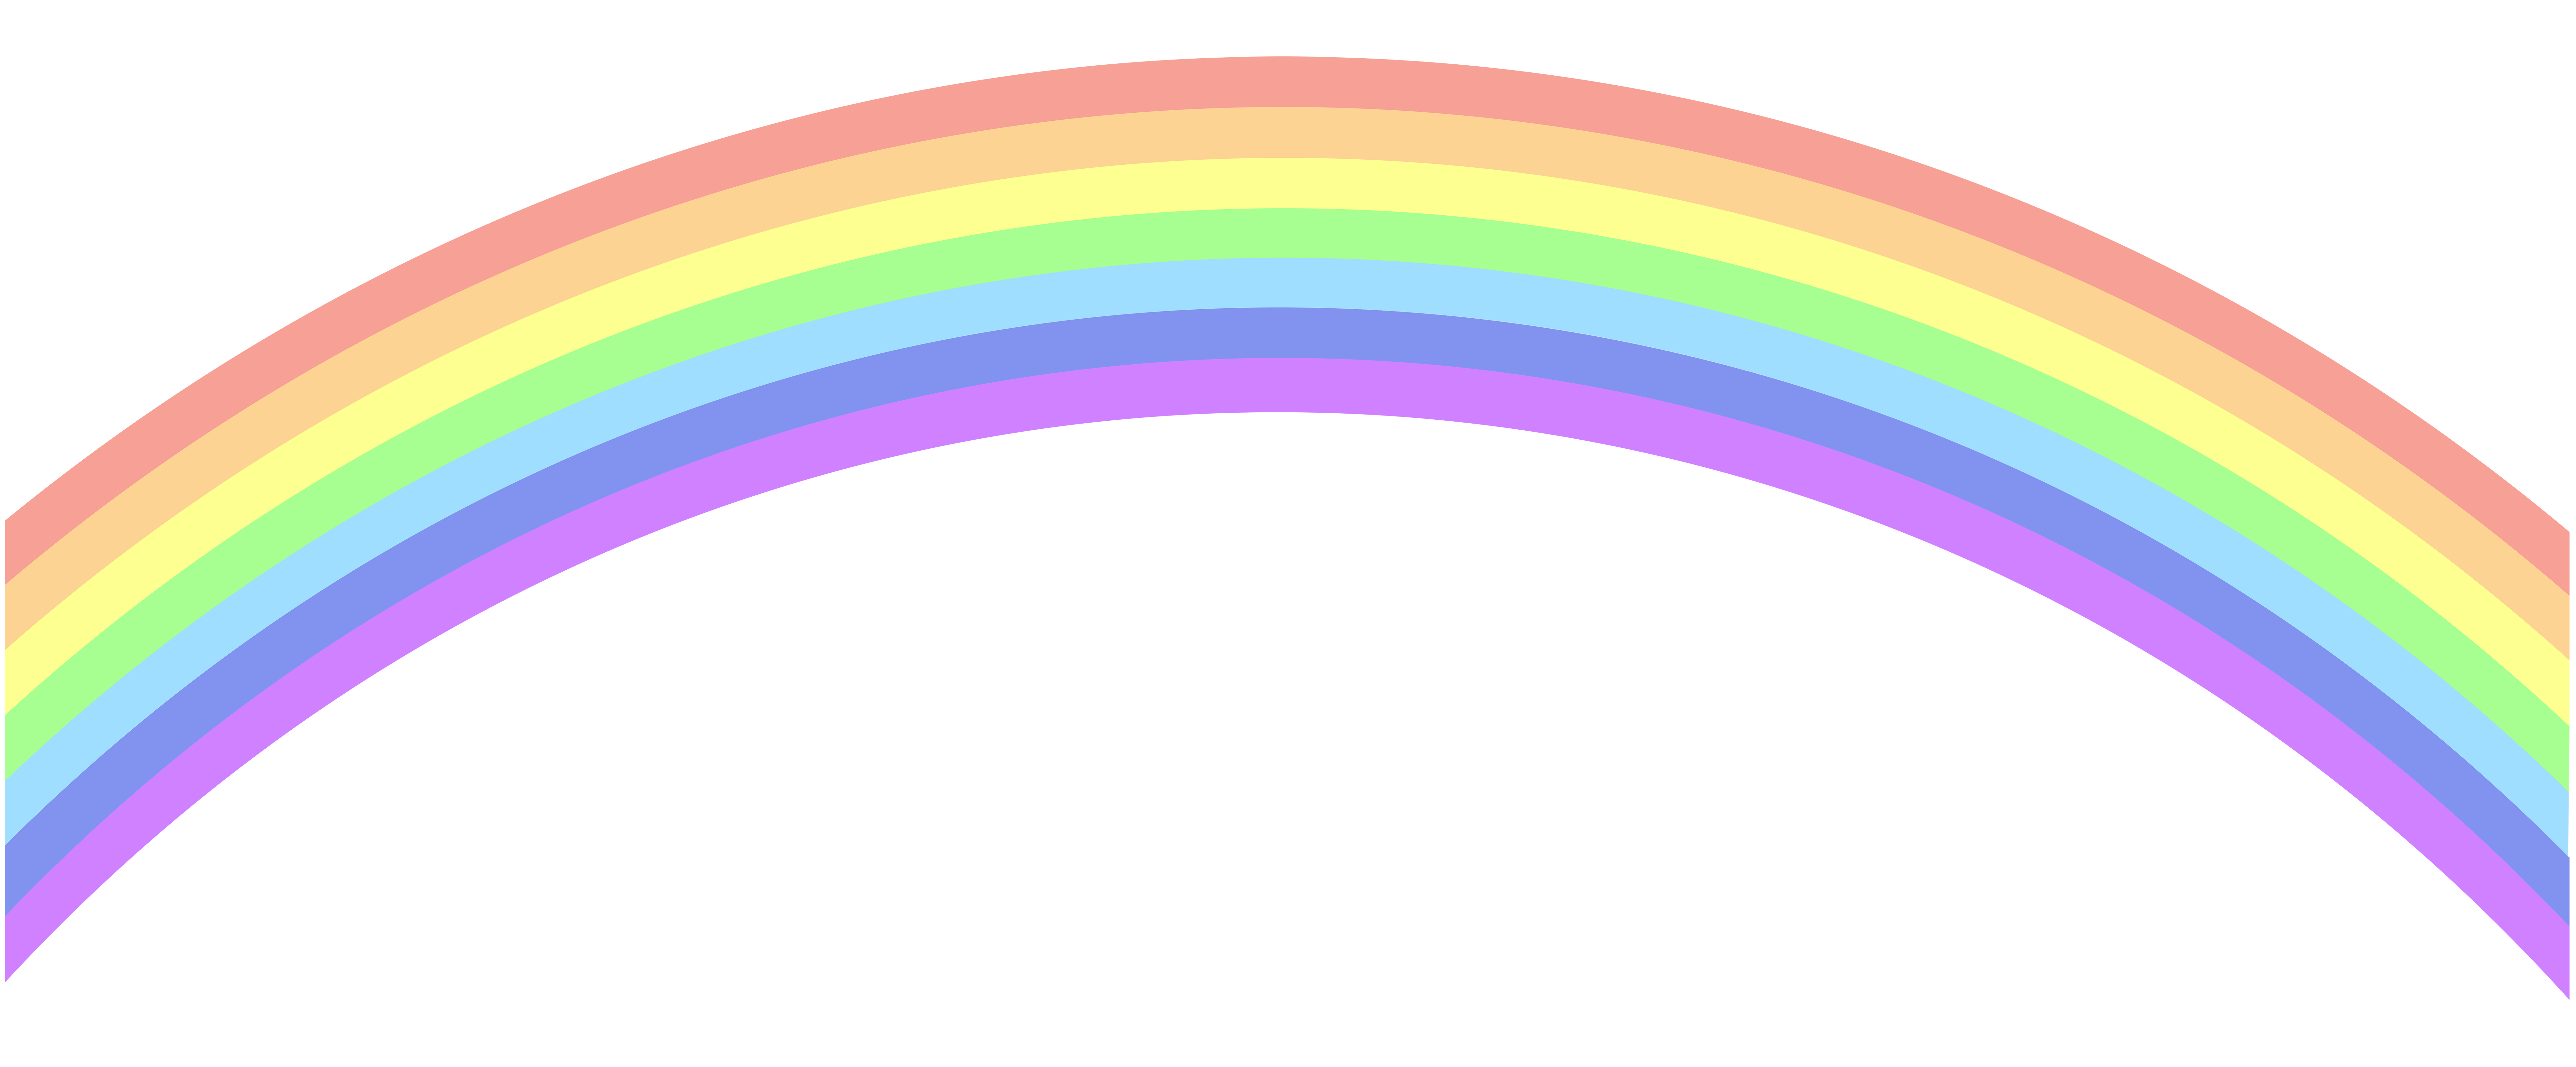 Rainbow clipart #2, Download drawings